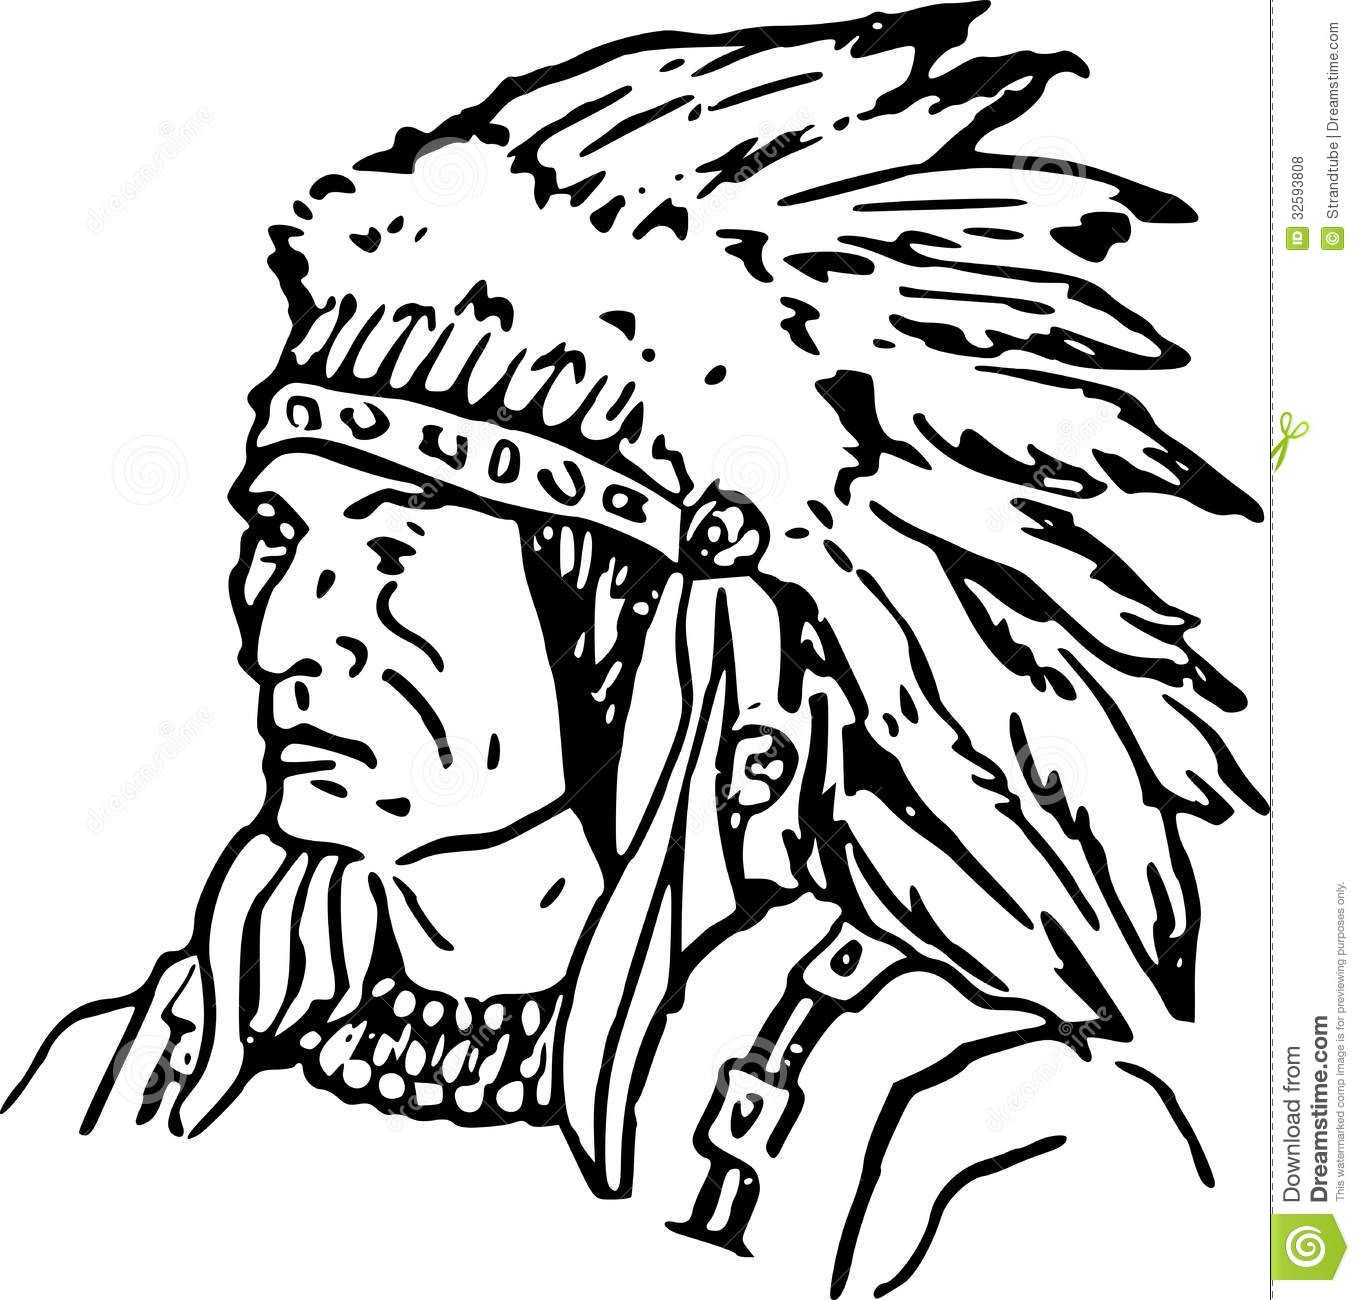 Indian Coloring Pages For Adults Hand Drawn Indian Chief Royalty